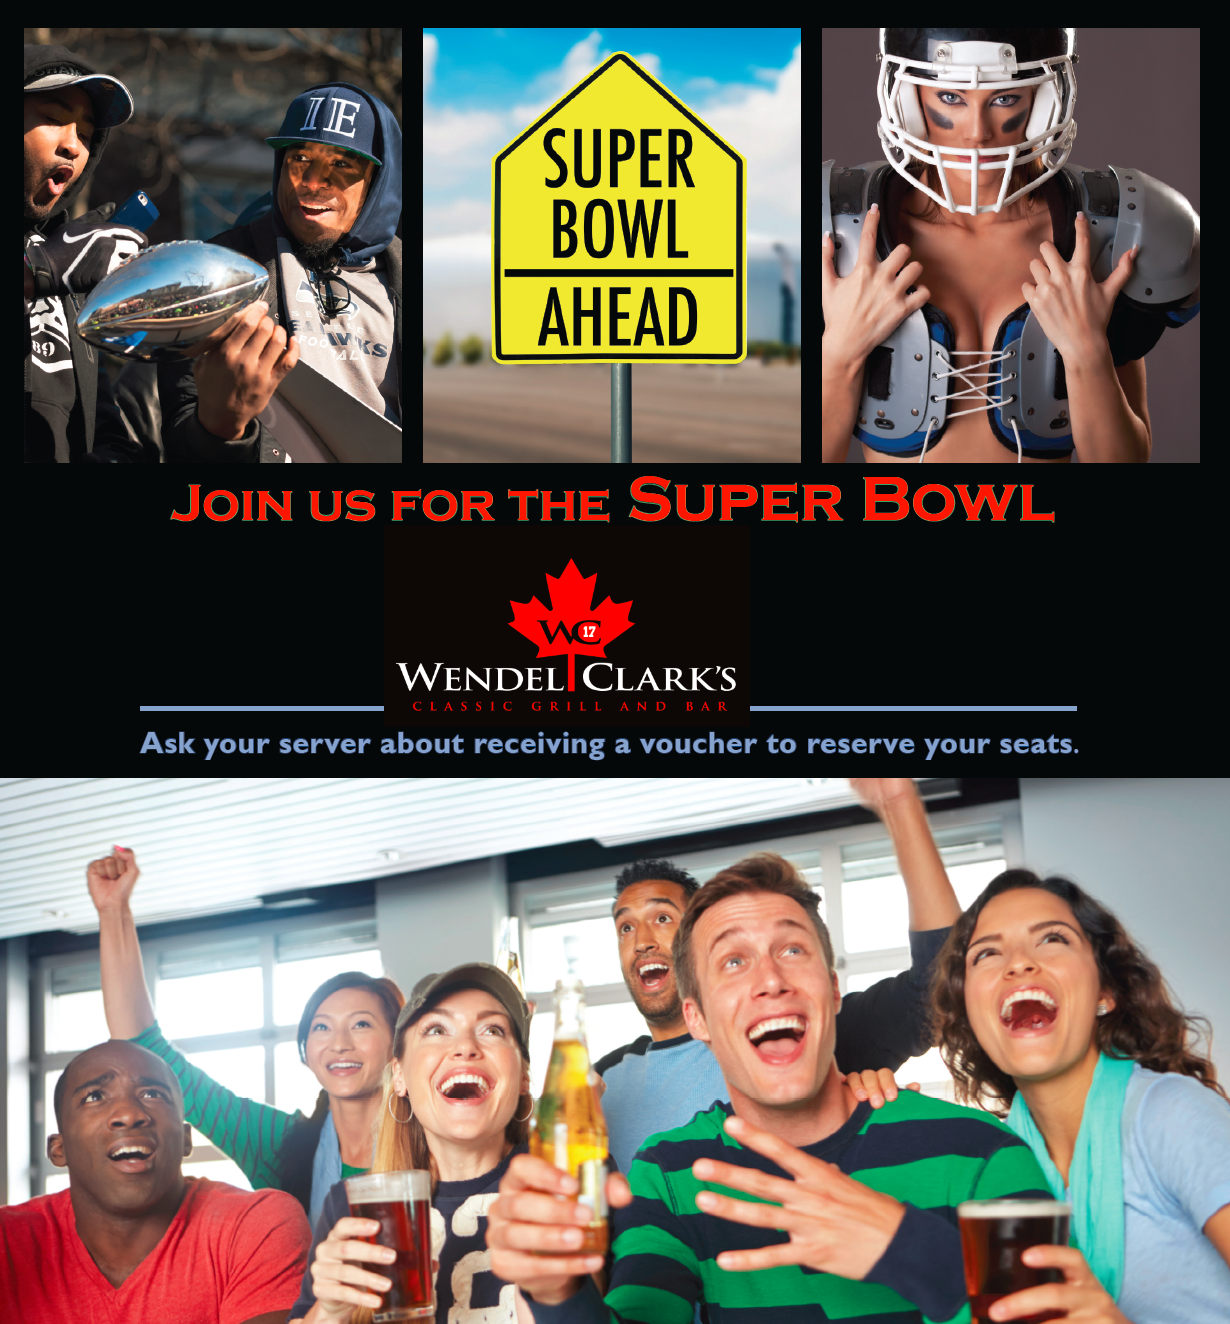 Join us for the Super Bowl at Wendel Clark's